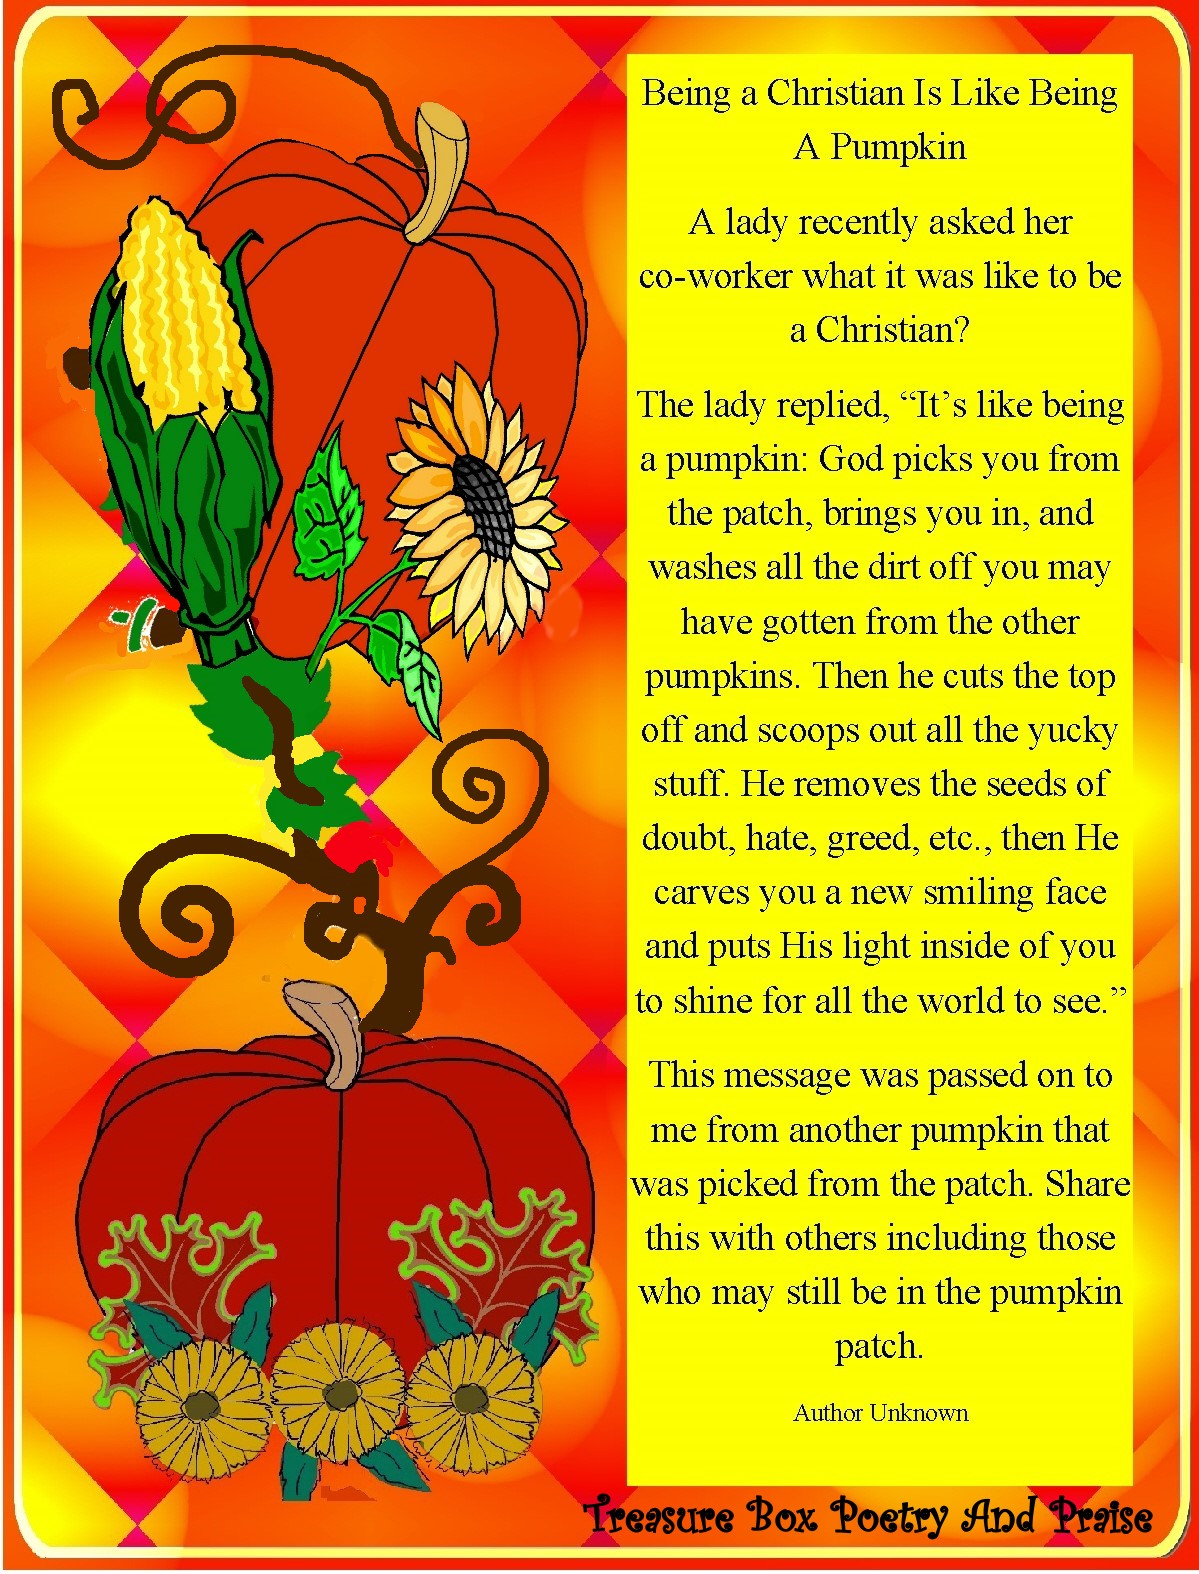 Christian Images In My Treasure Box Fall Harvest Poem